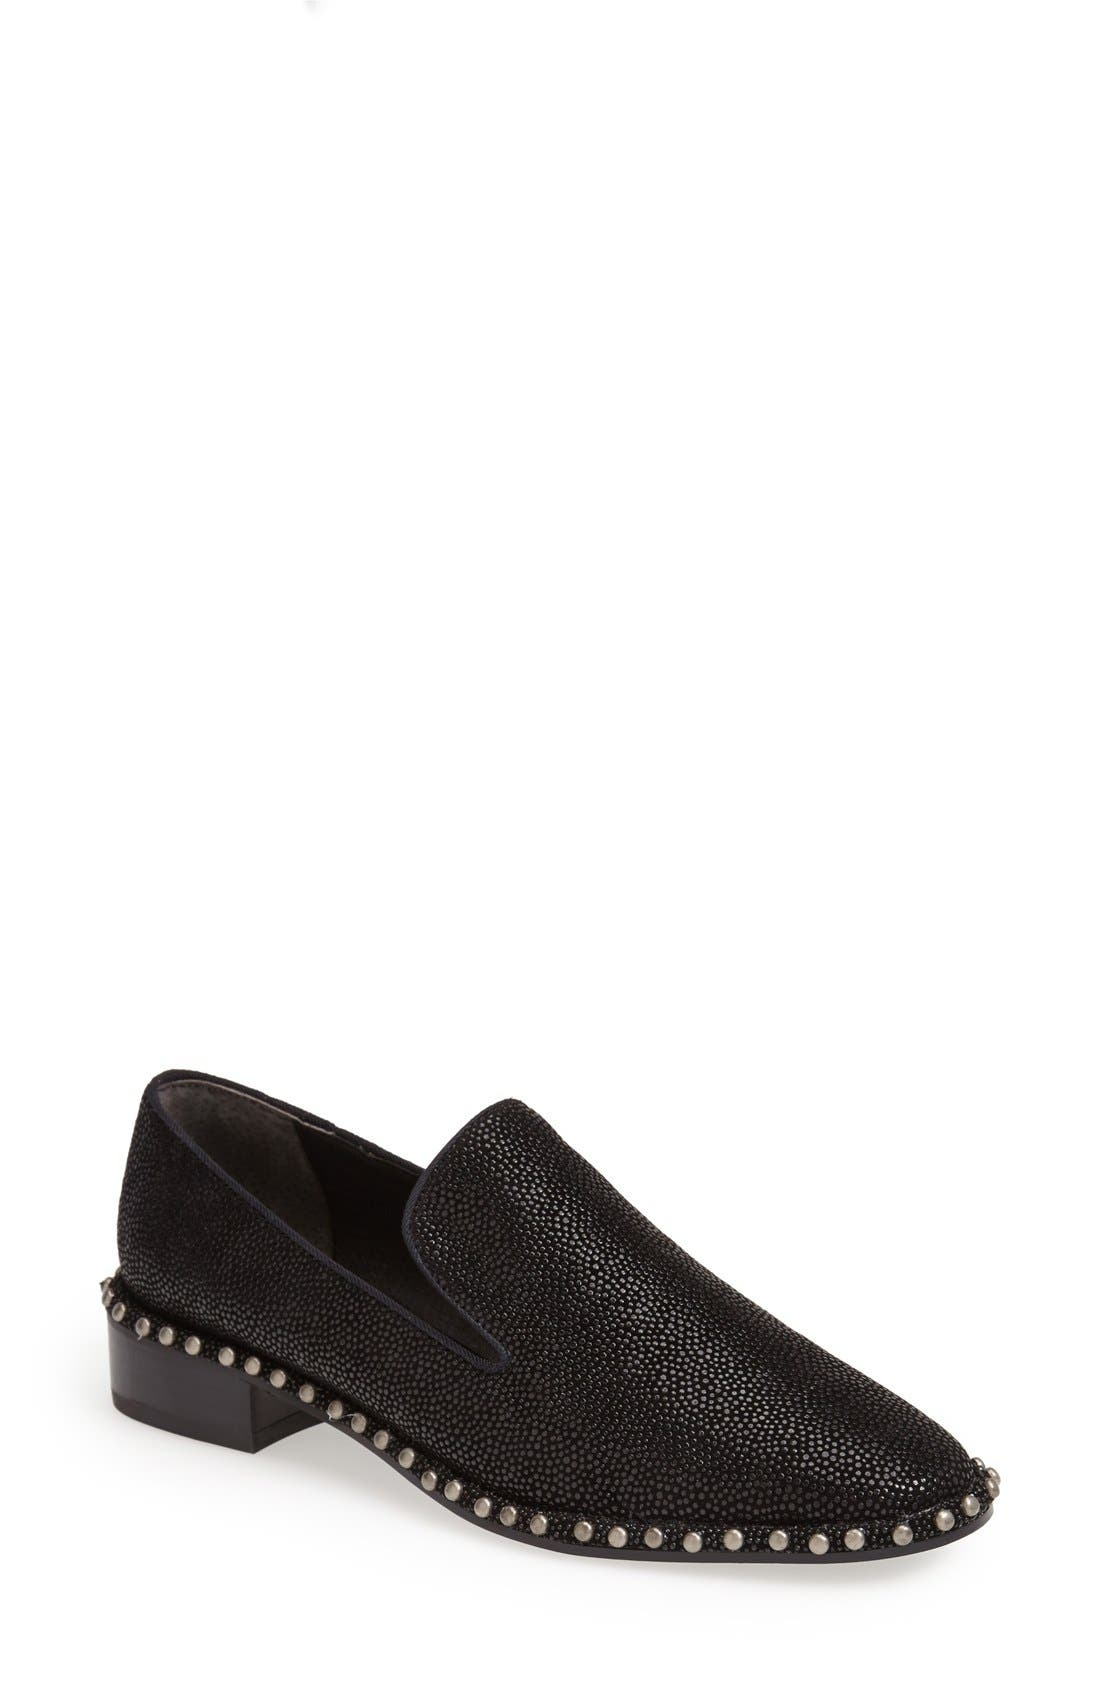 ADRIANNA PAPELL 'Prince' Studded Smoking Slipper Flat